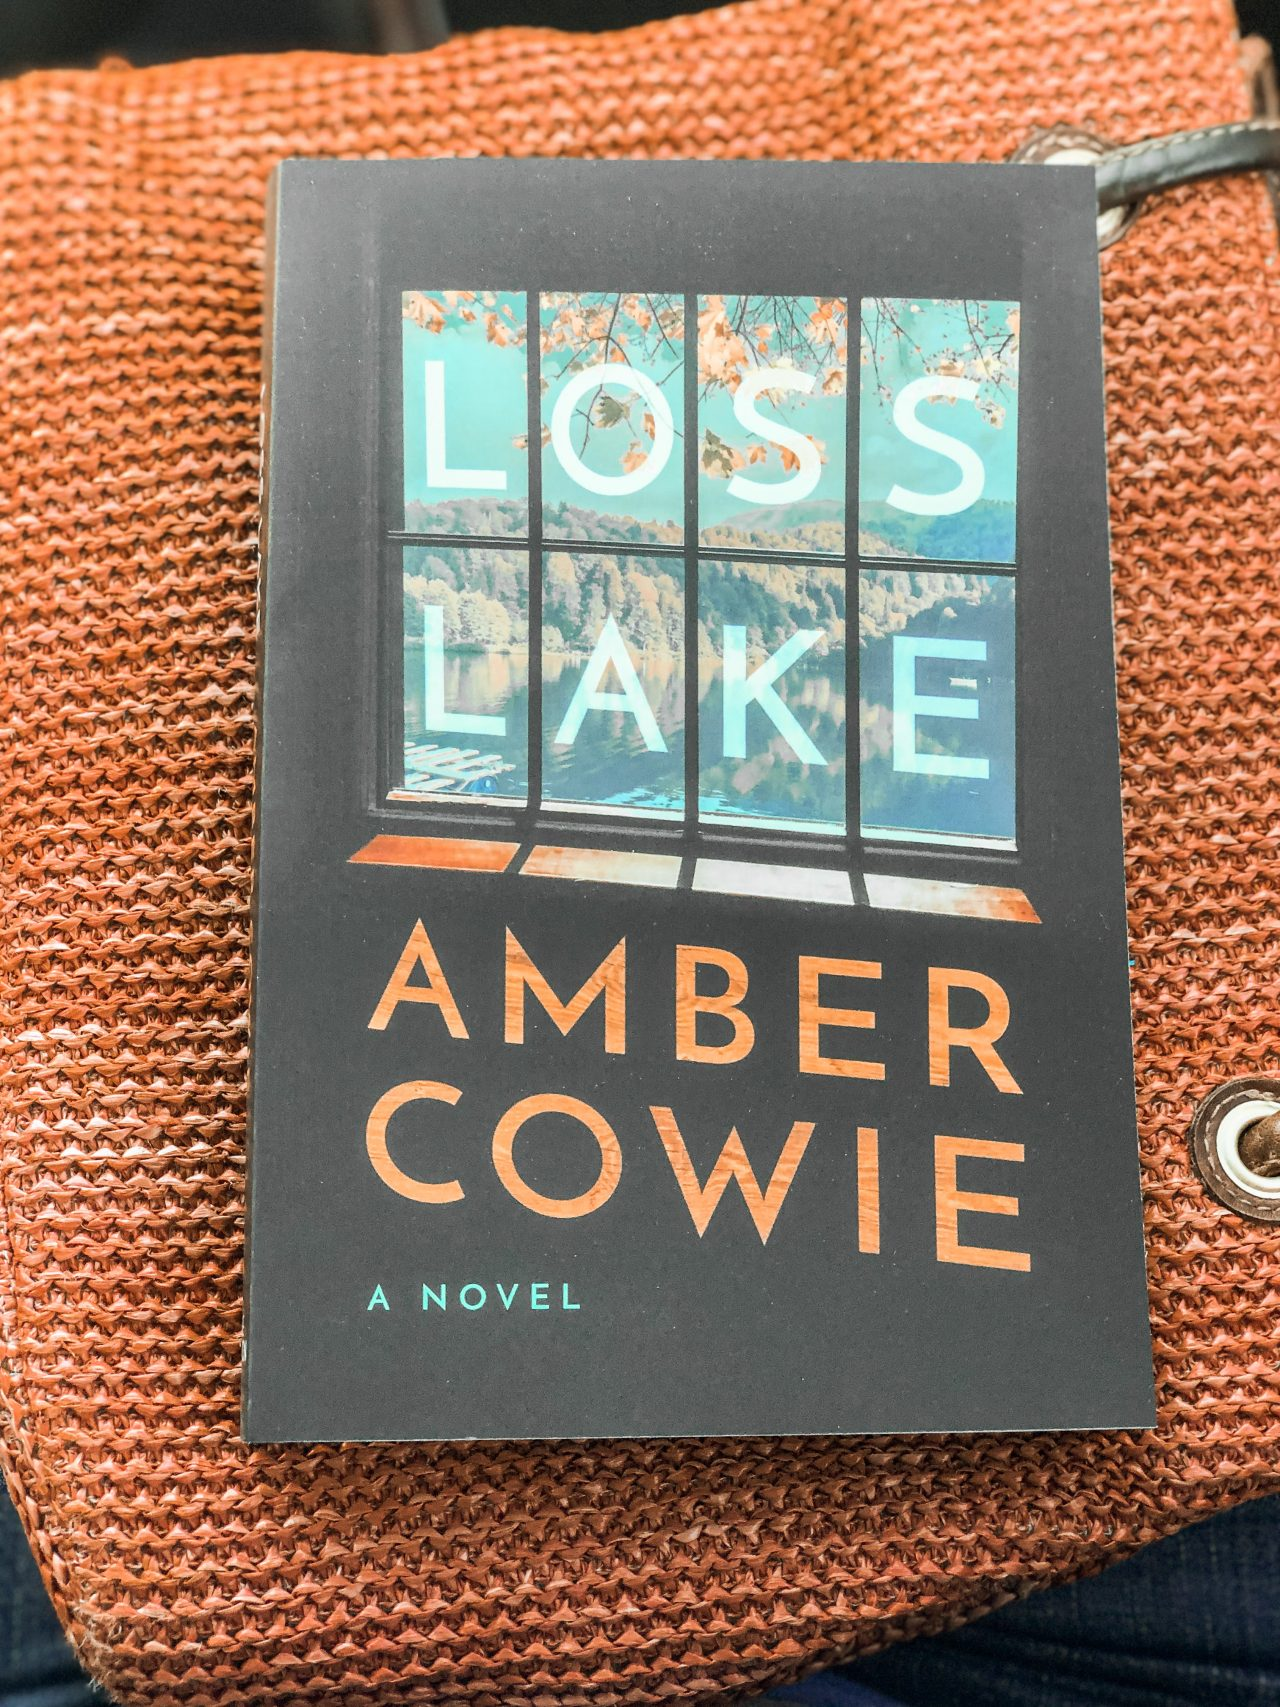 A book with a black cover, a window with glass panes showing a lake, fall leaves hanging from a tree, and tree-covered hills with a bluish-gray sky titled Loss Lake by Amber Cowie